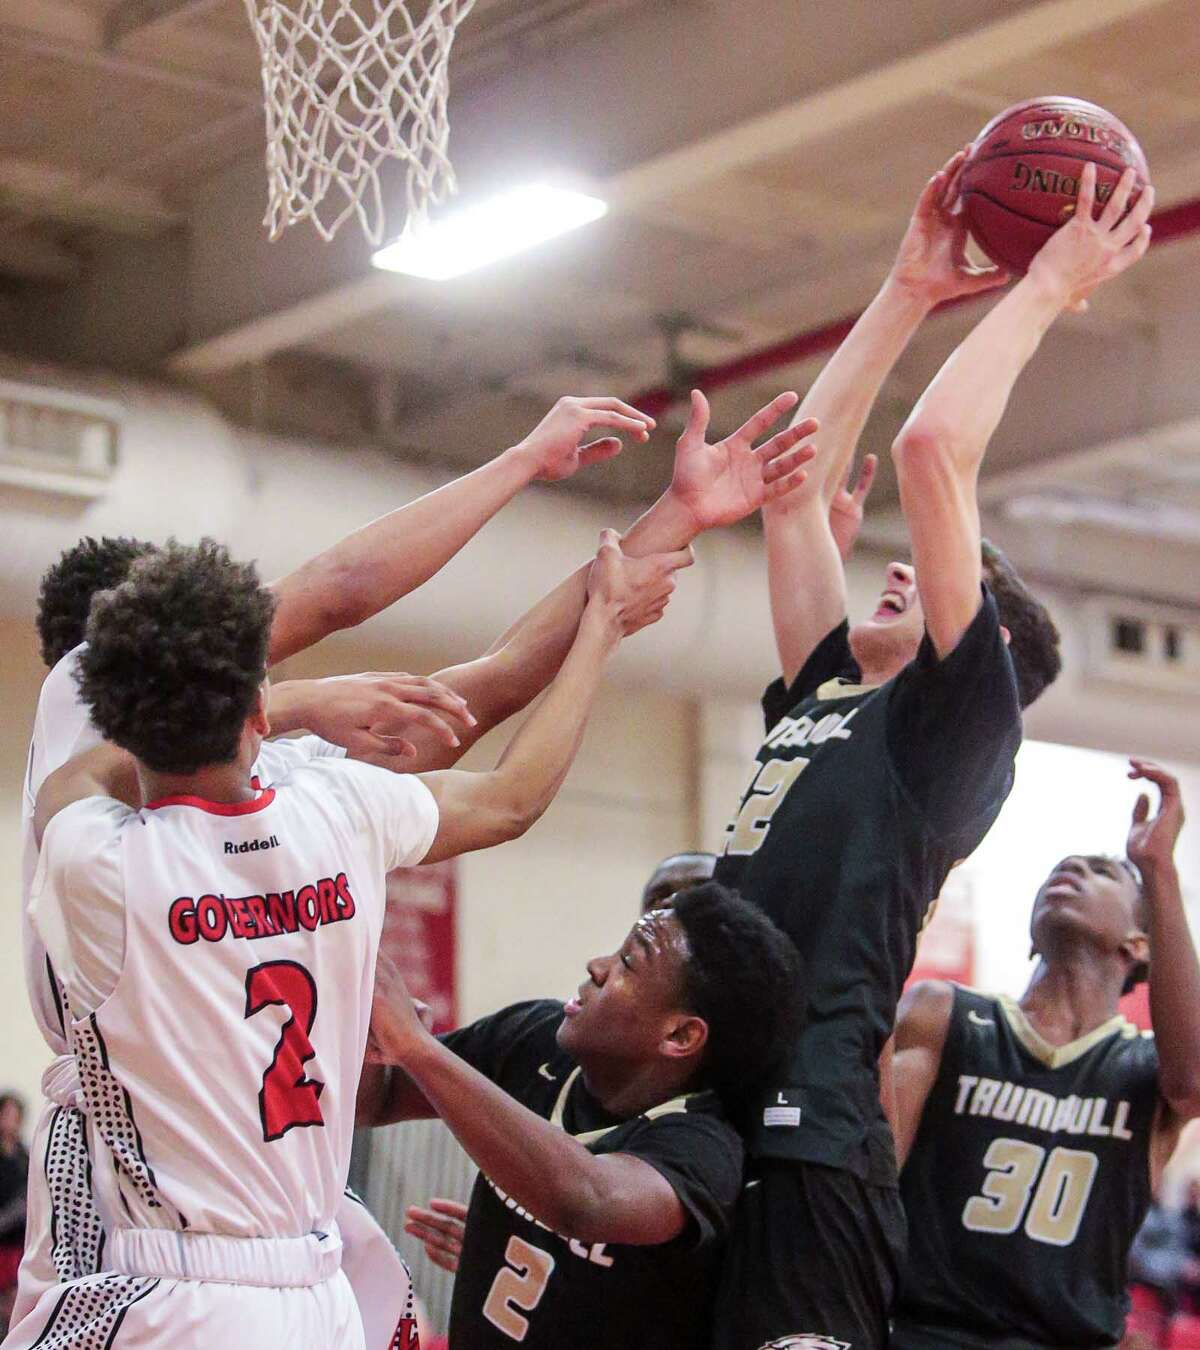 Trumbull's John Paul Fromageot (22) battles for an offensive rebound during their 67-65 loss to Wilbur Cross Friday evening in New Haven.